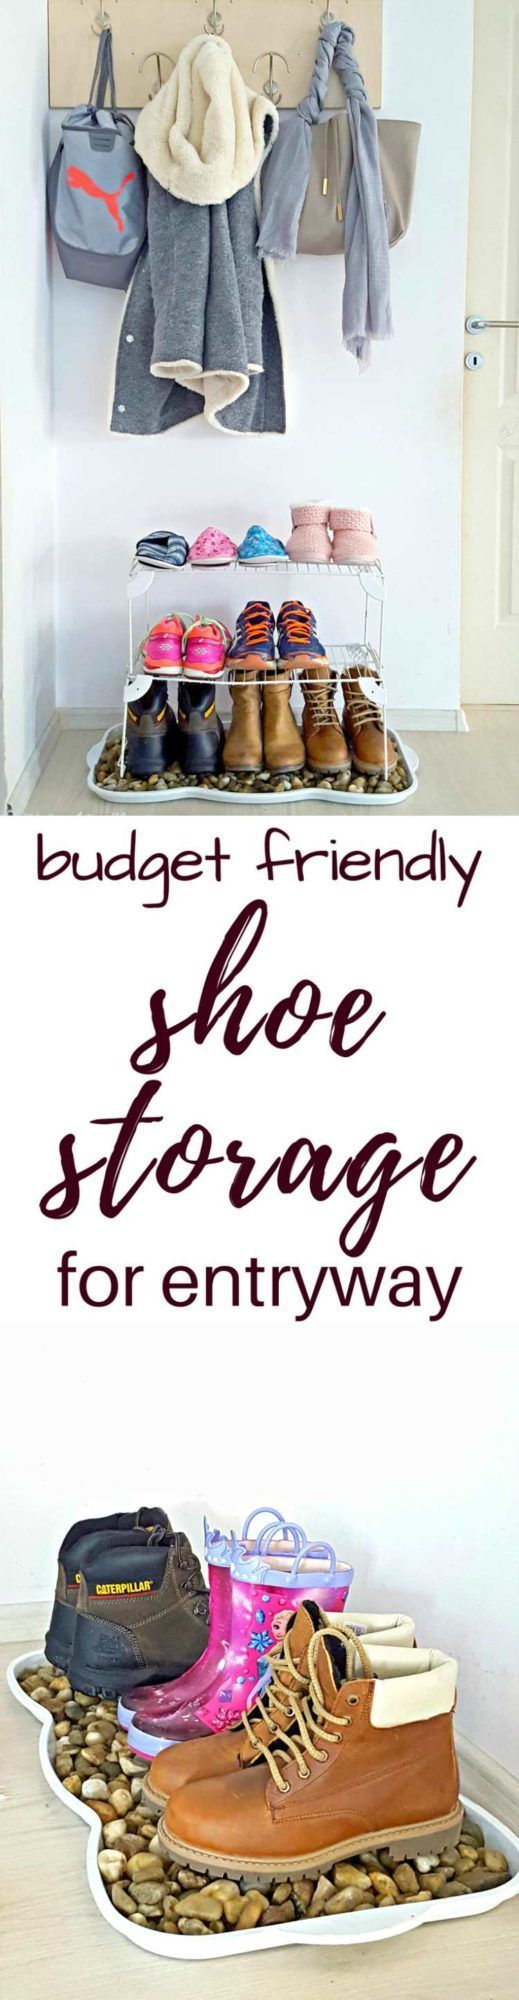 DIY SHOE STORAGE - Upgrade an old boot tray with this DIY shoe storage! Perfect for snowy boots, this front door shoe storage idea will completely change the look of your entryway!  #home #homedecor #forthehome #homedesign #homedecorideas #shoestorage #entryway #entrywaydecorideas #storage #storageorganization #StorageSolutions #organize #organizedhome